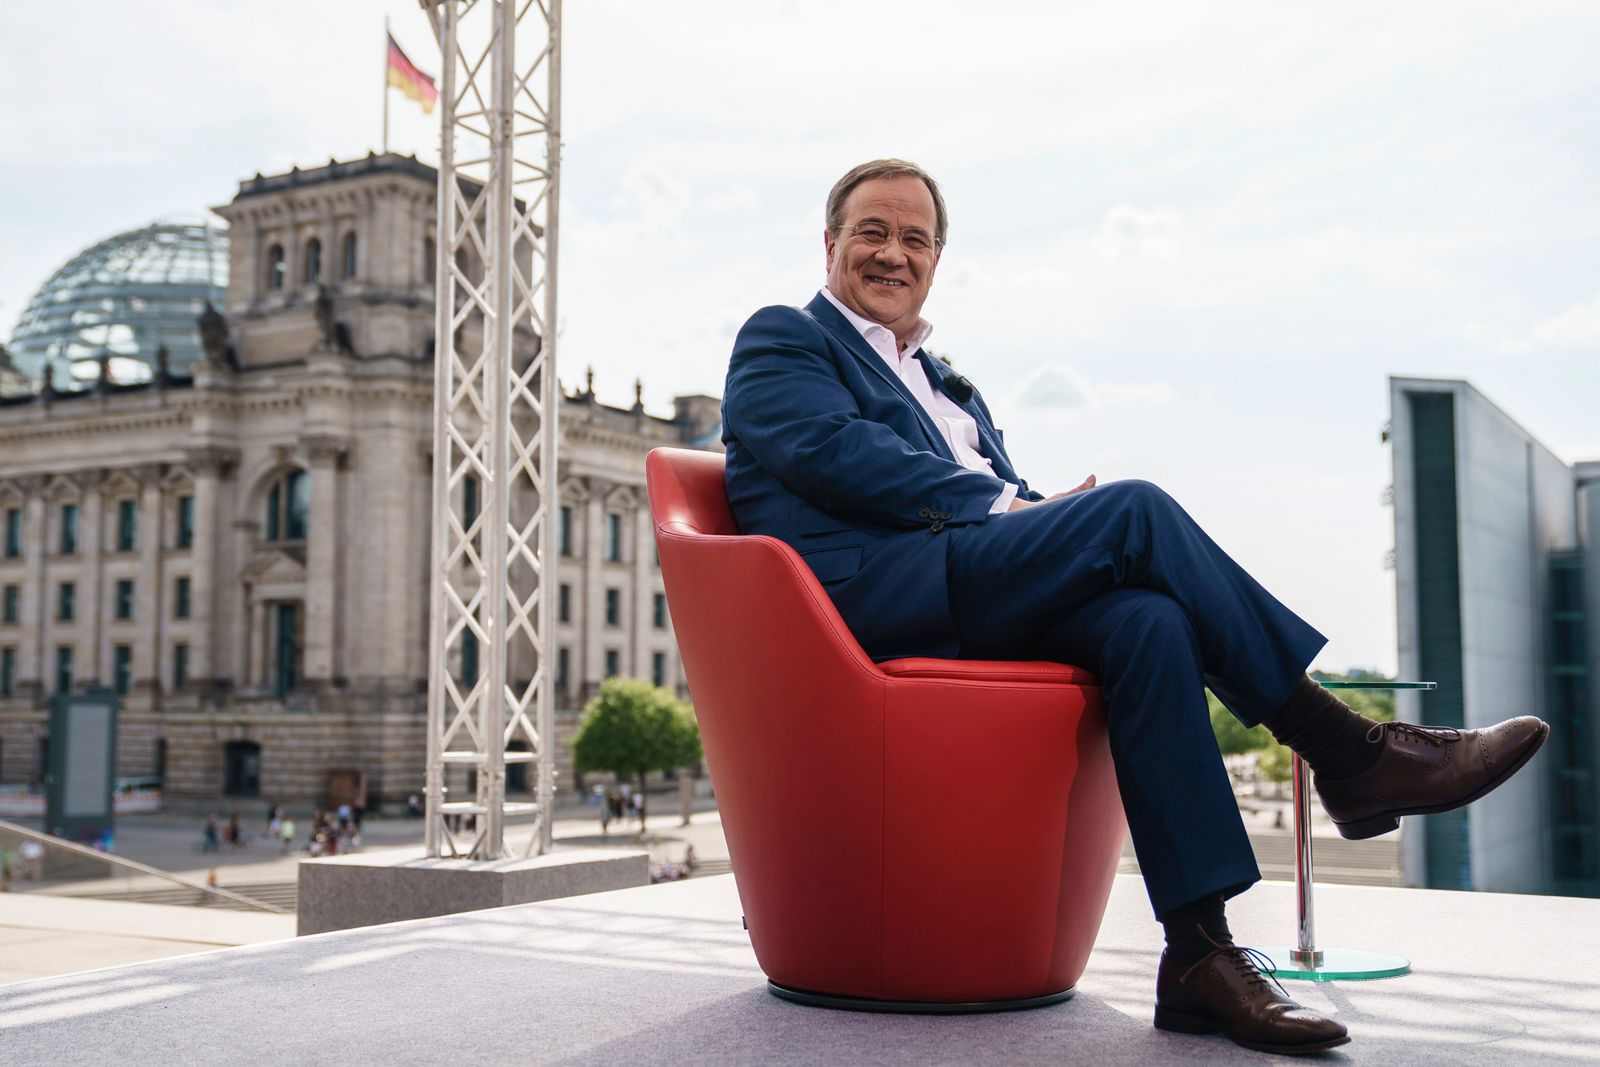 CDU top candidate for the federal elections Armin Laschet attends ARD summer interview